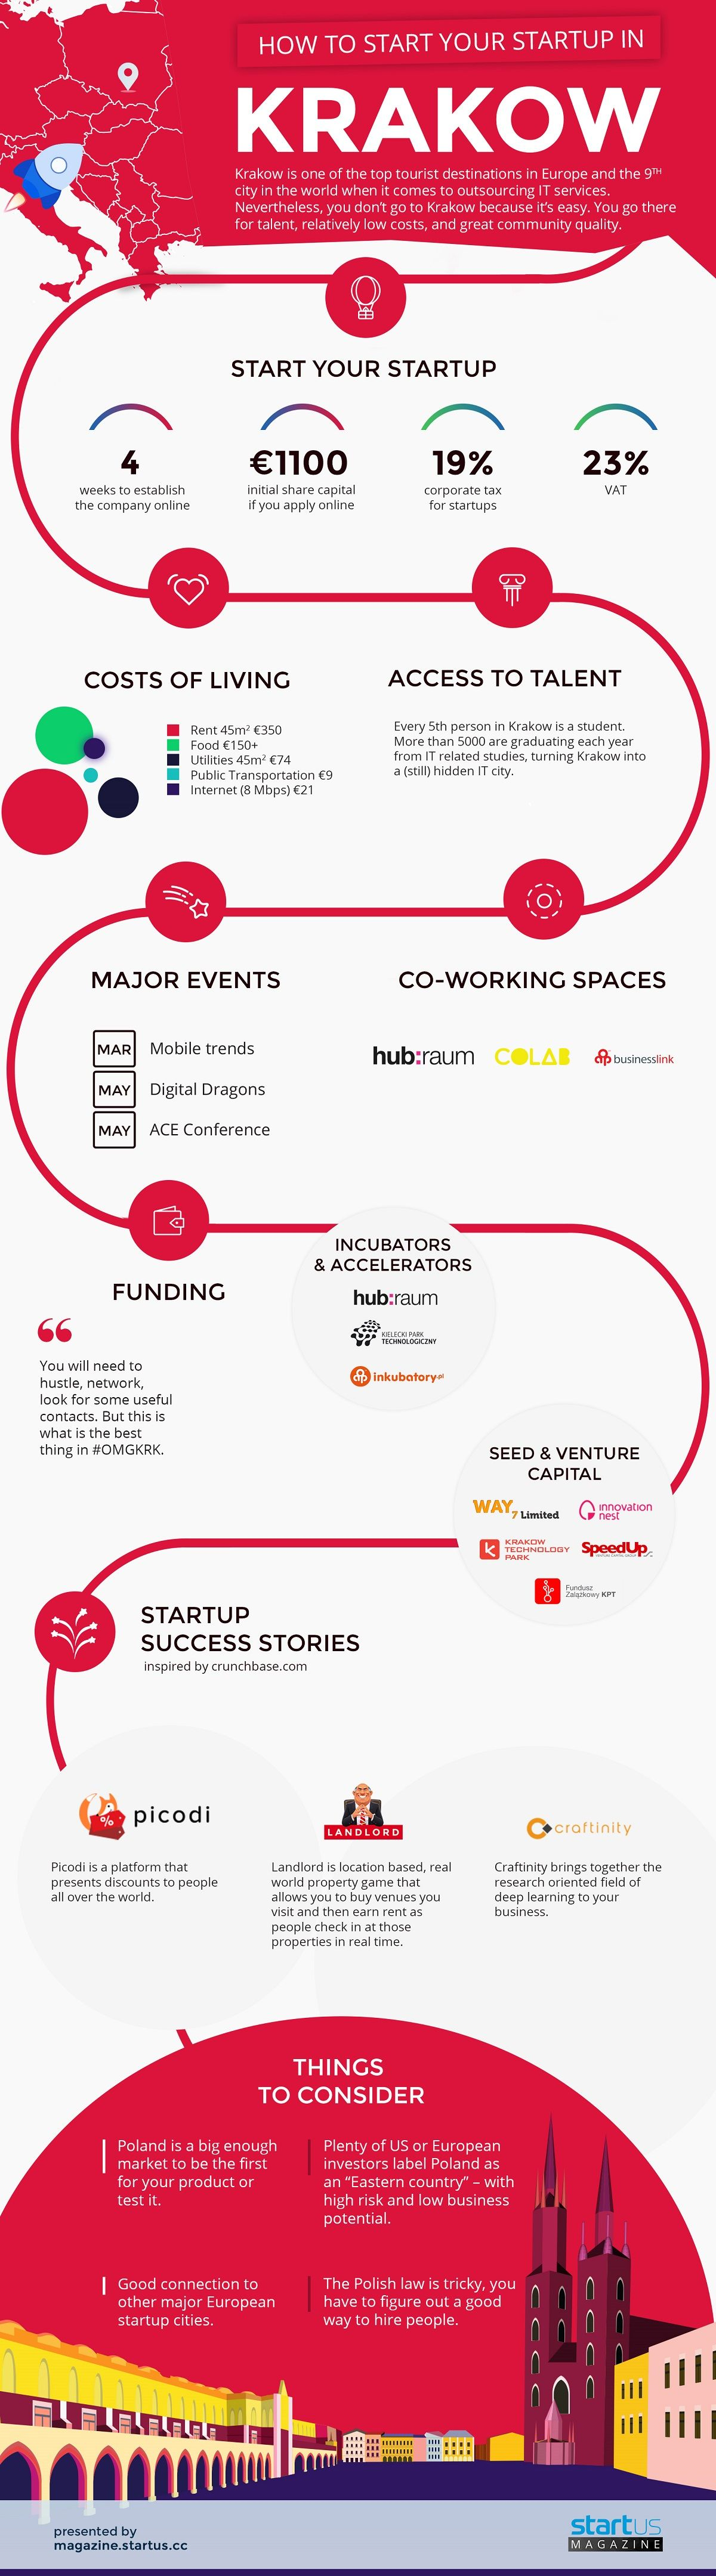 How To Start Your Startup In Krakow